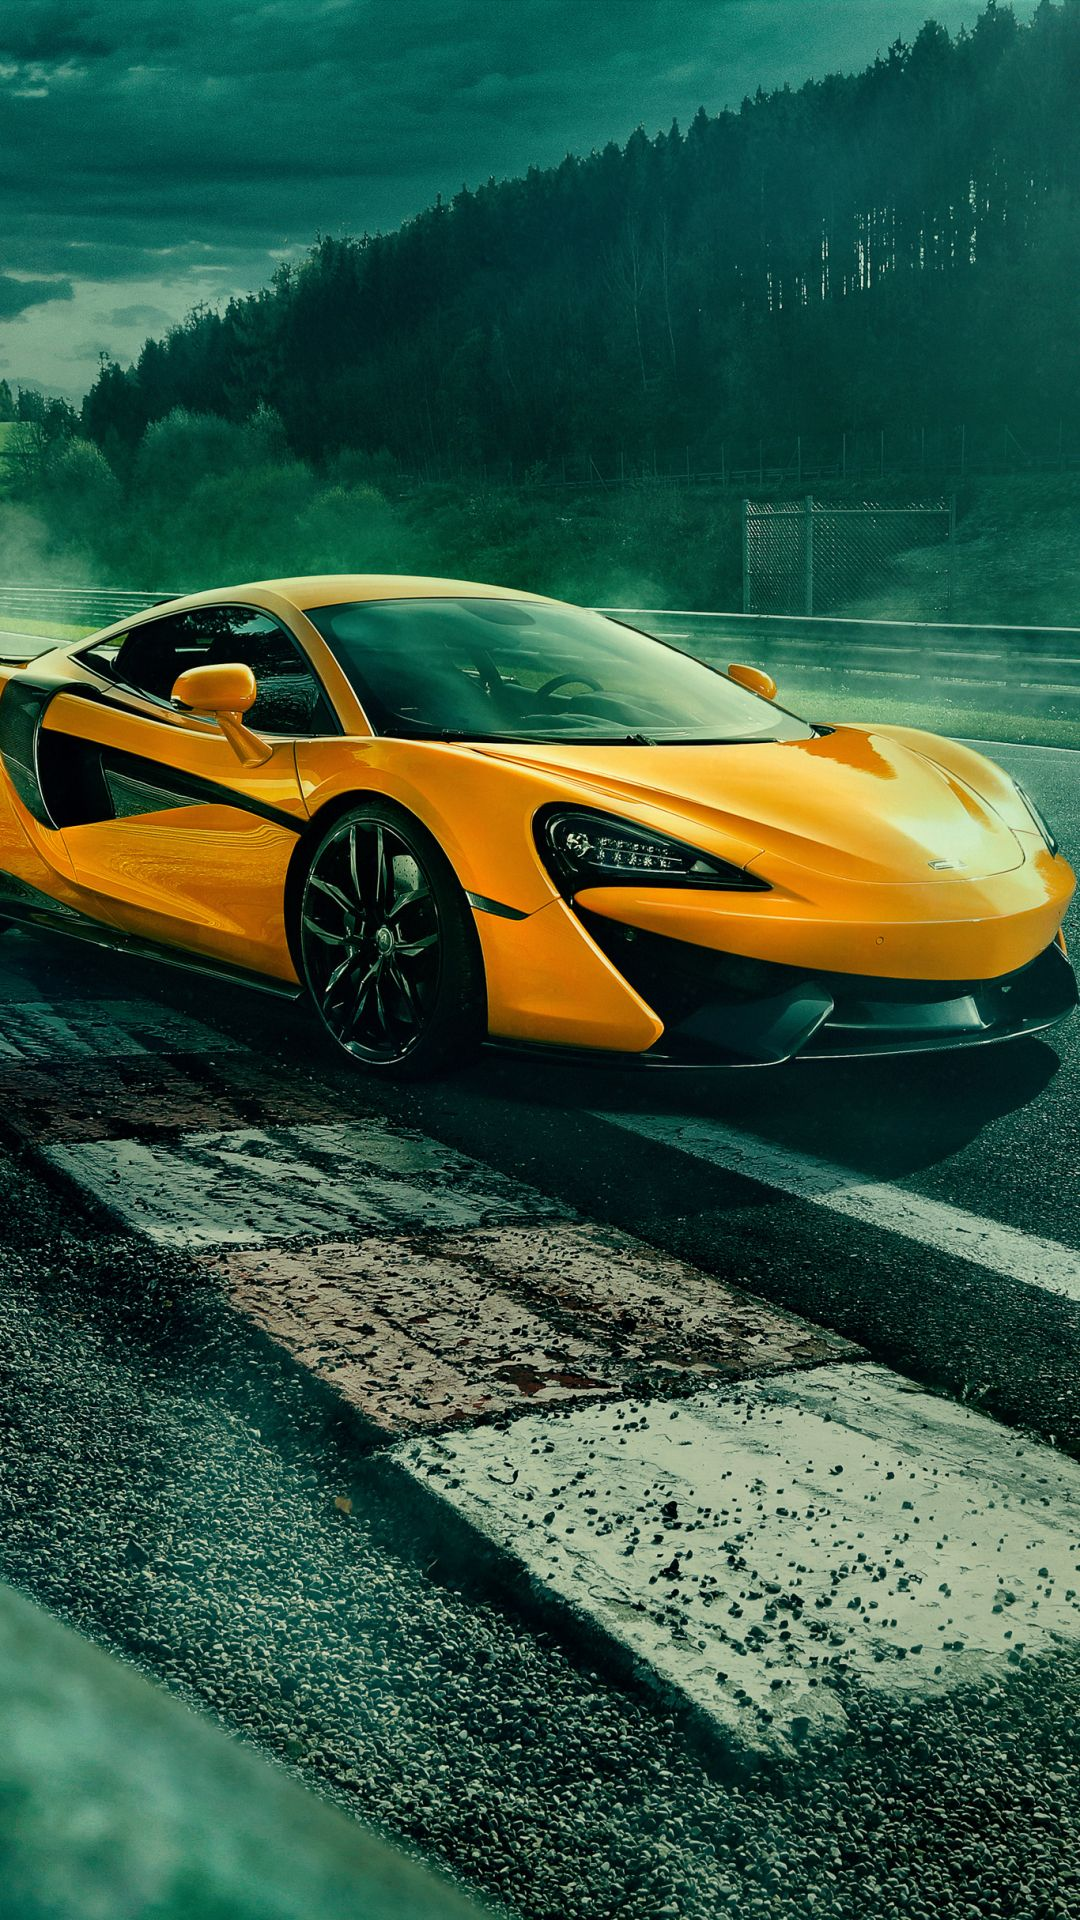 Vehicles Mclaren 570s Mclaren Car Sport Car Supercar Vehicle Yellow Car 1080x1920 Mobile Wallpaper Maclaren Cars Car Wallpapers Super Cars